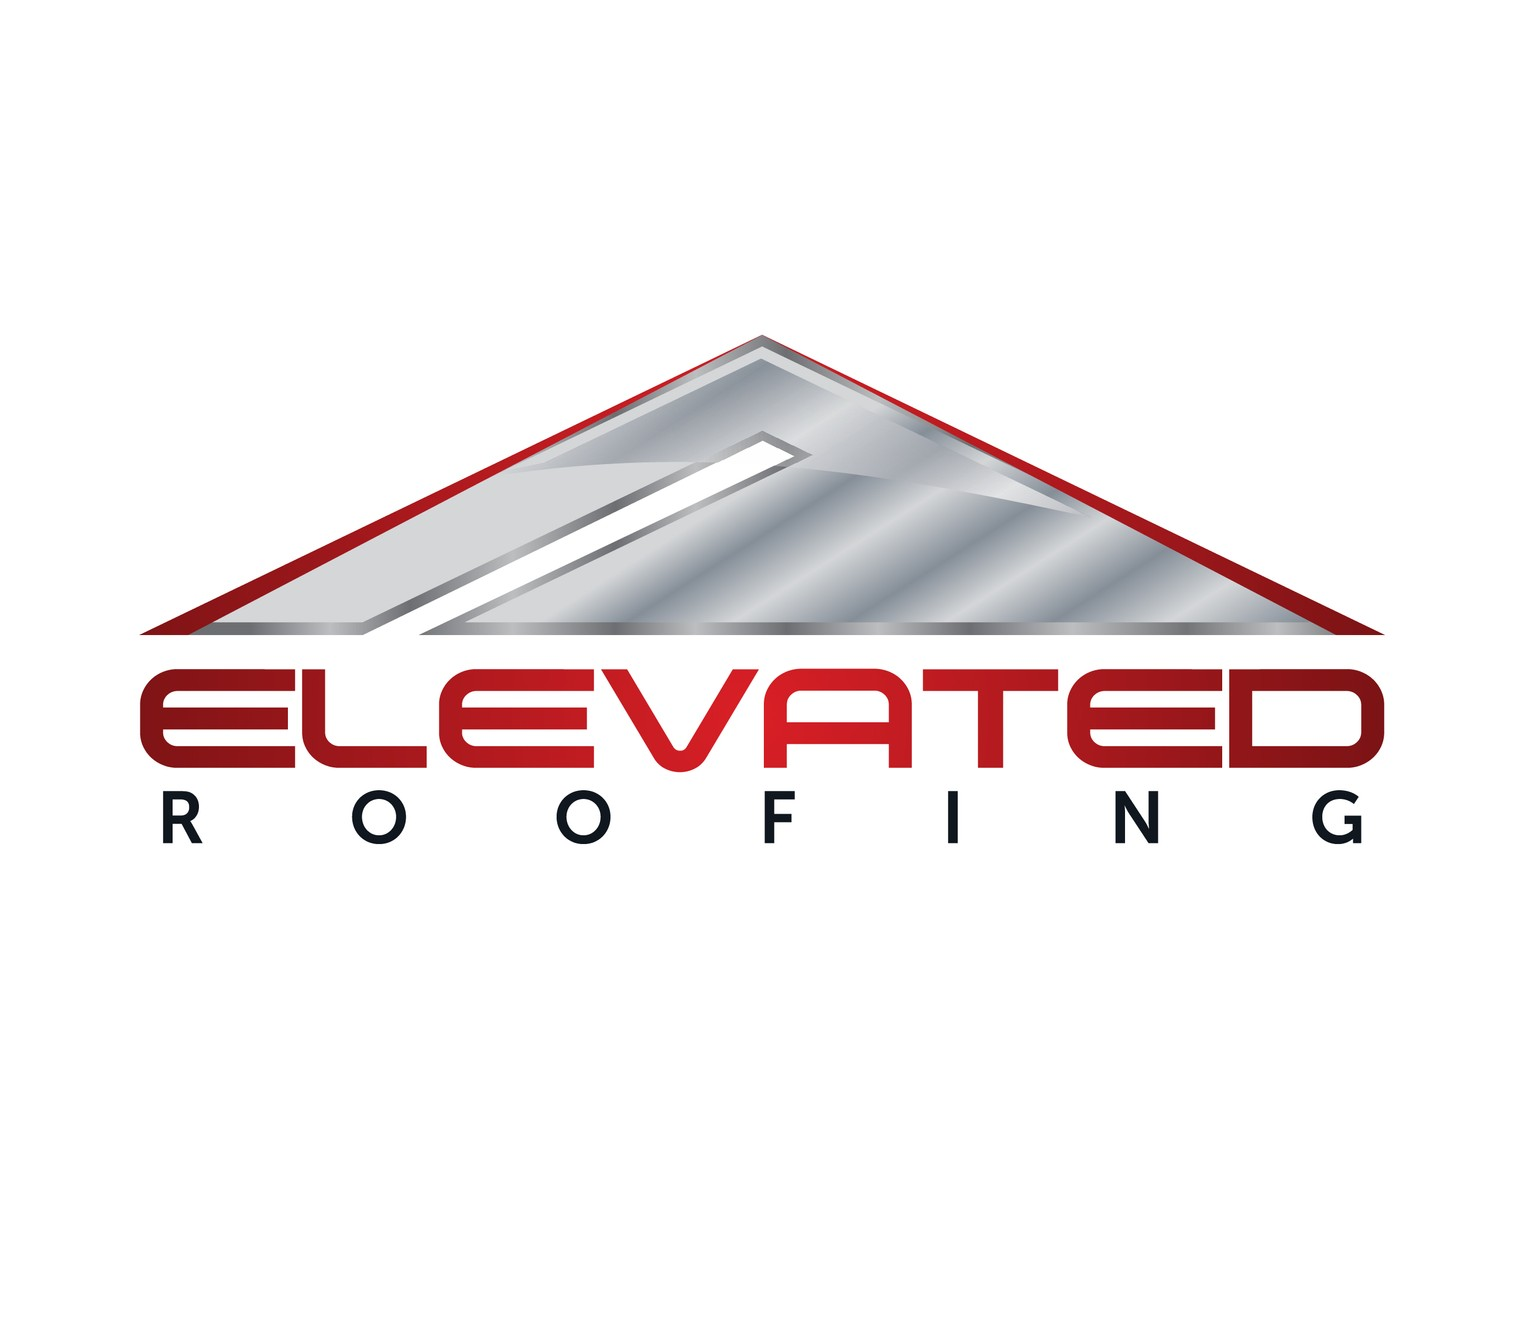 Elevated Roofing logo